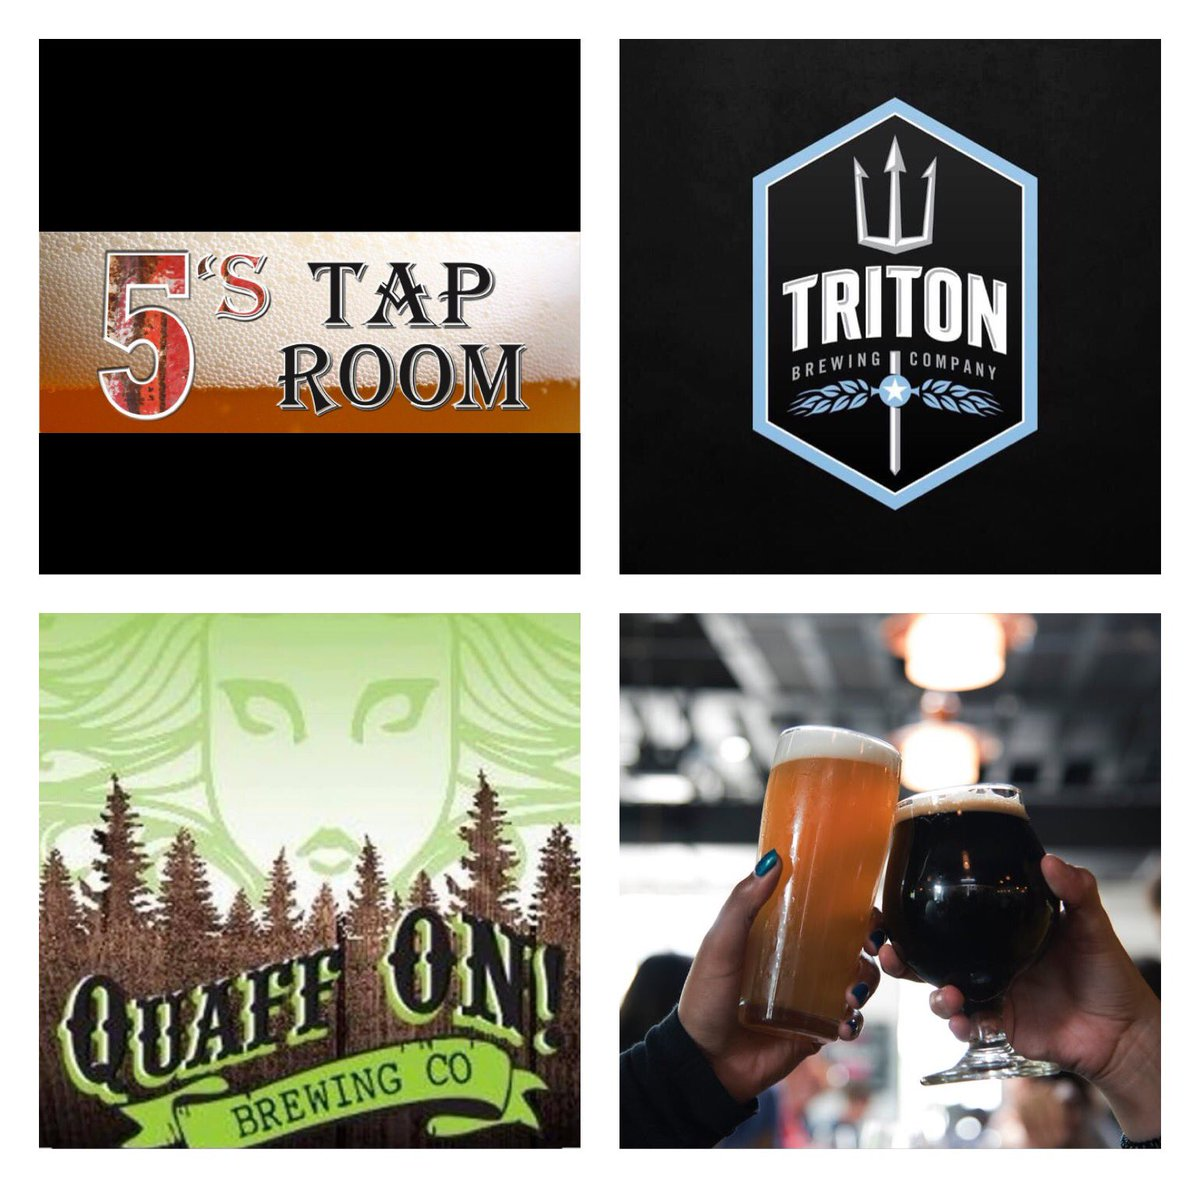 Awesome Taproom @5Taproom Great Staff - Huge Support for Indiana Beers 🍻 Mark your calendars 🗓 6 Line Tap Takeovers. Two takeovers by 2 companies we support 🙏 Saturday March 9th Quaff On Brewing Saturday March 23rd Triton Brewing Company facebook.com/fivesTapRoom/